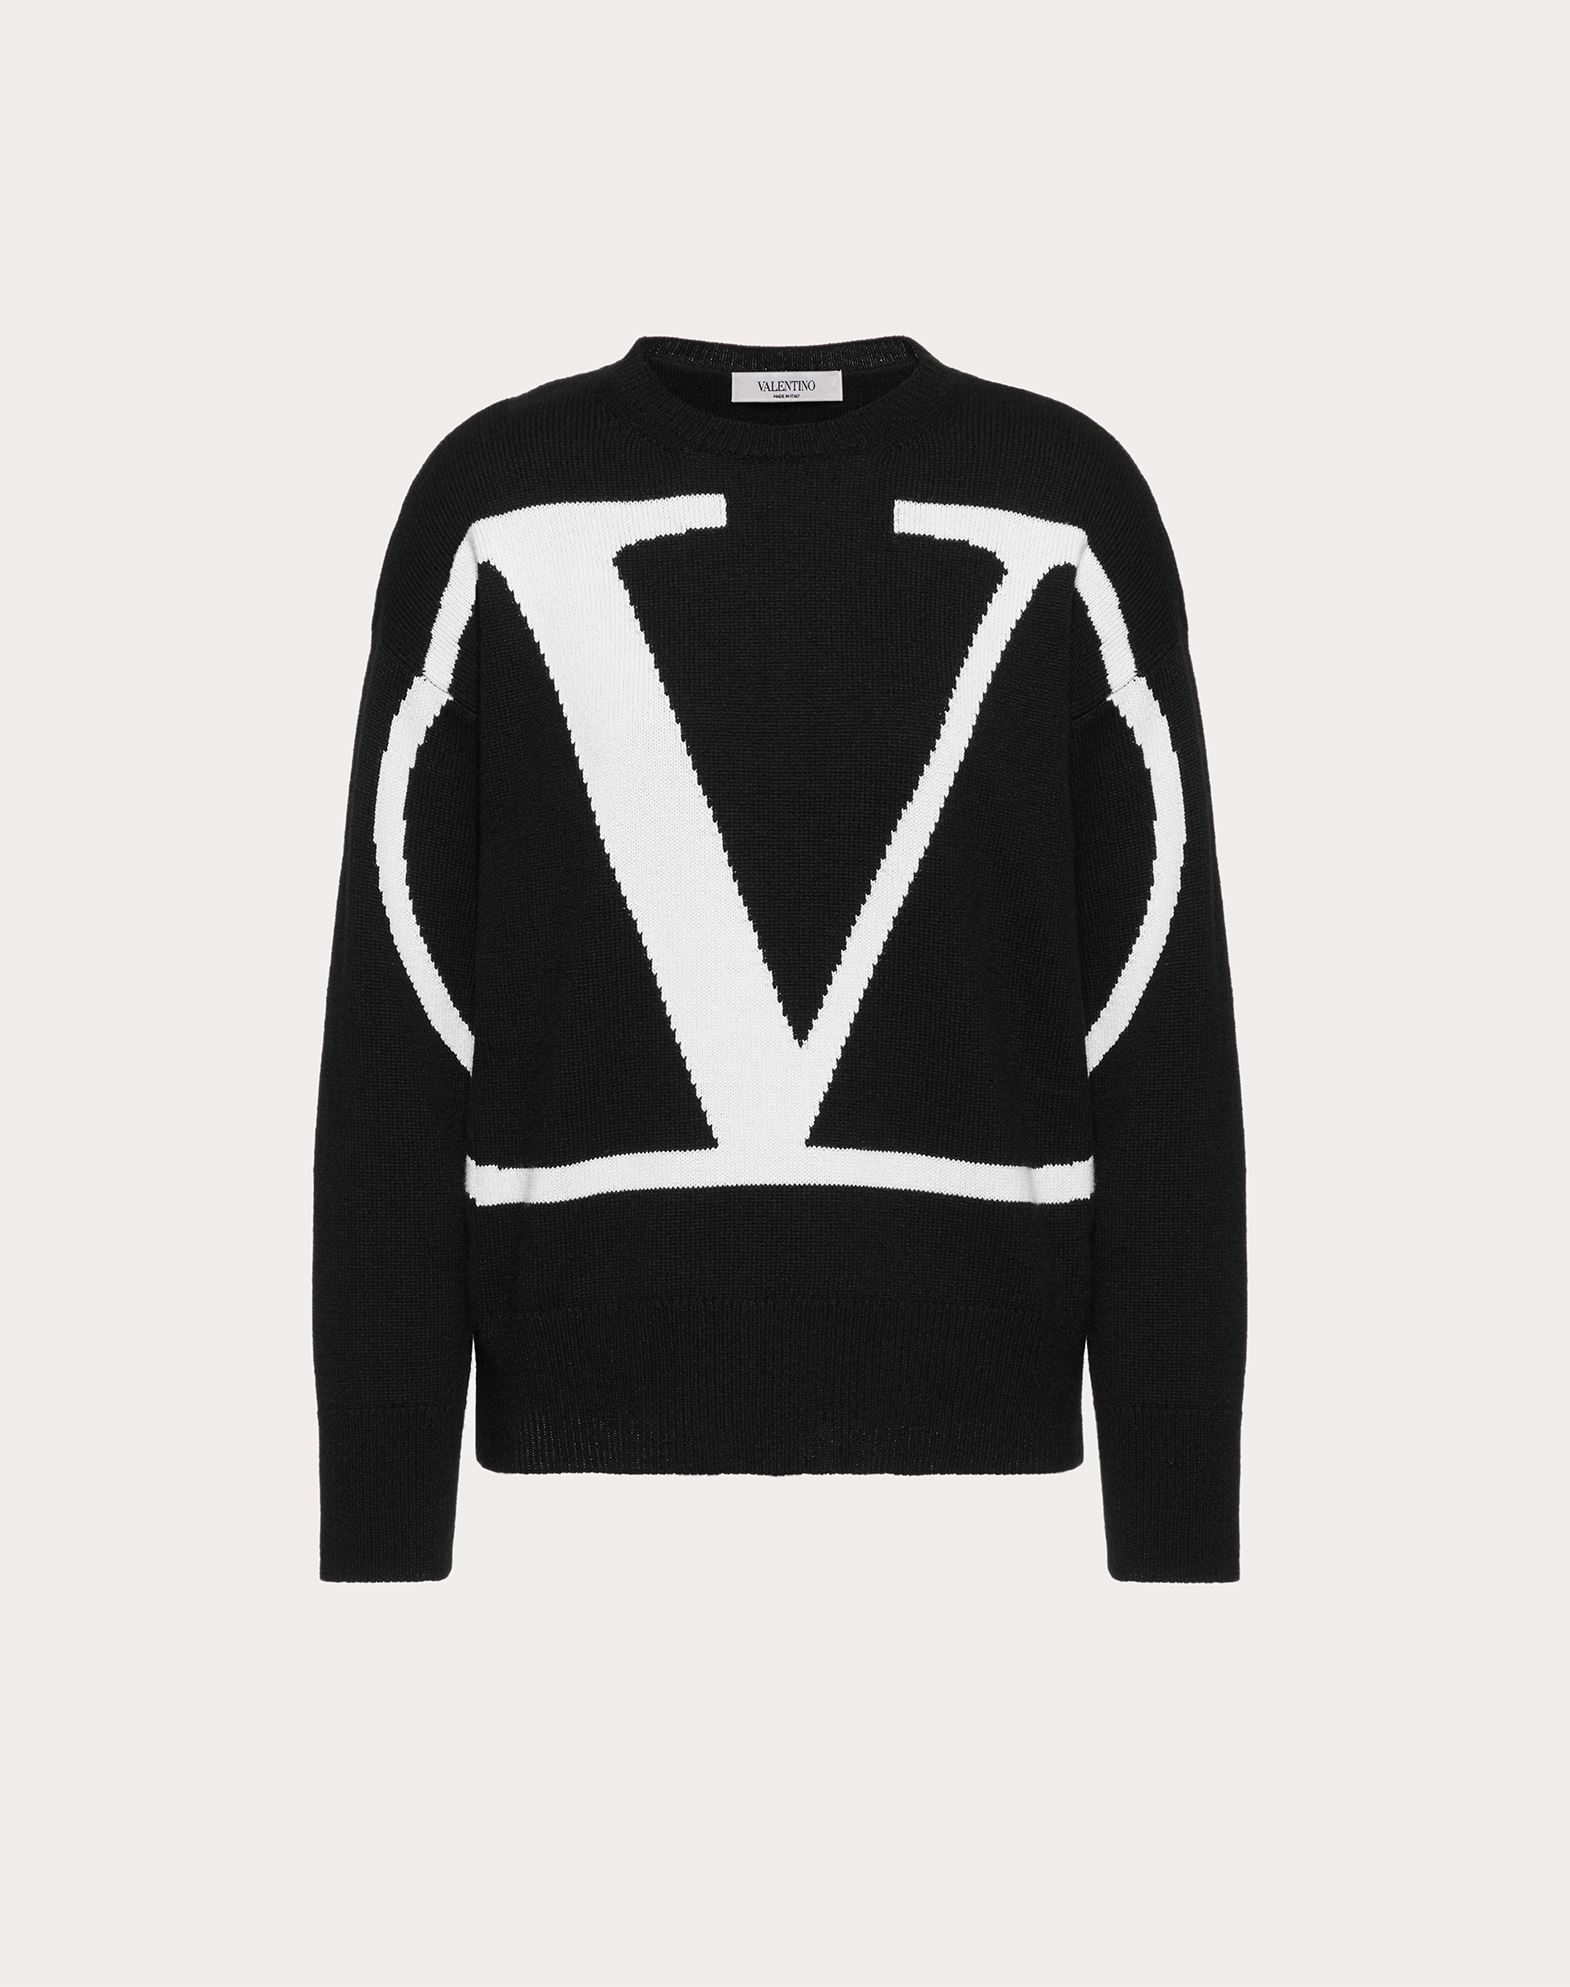 VLOGO INLAY CASHMERE SWEATER